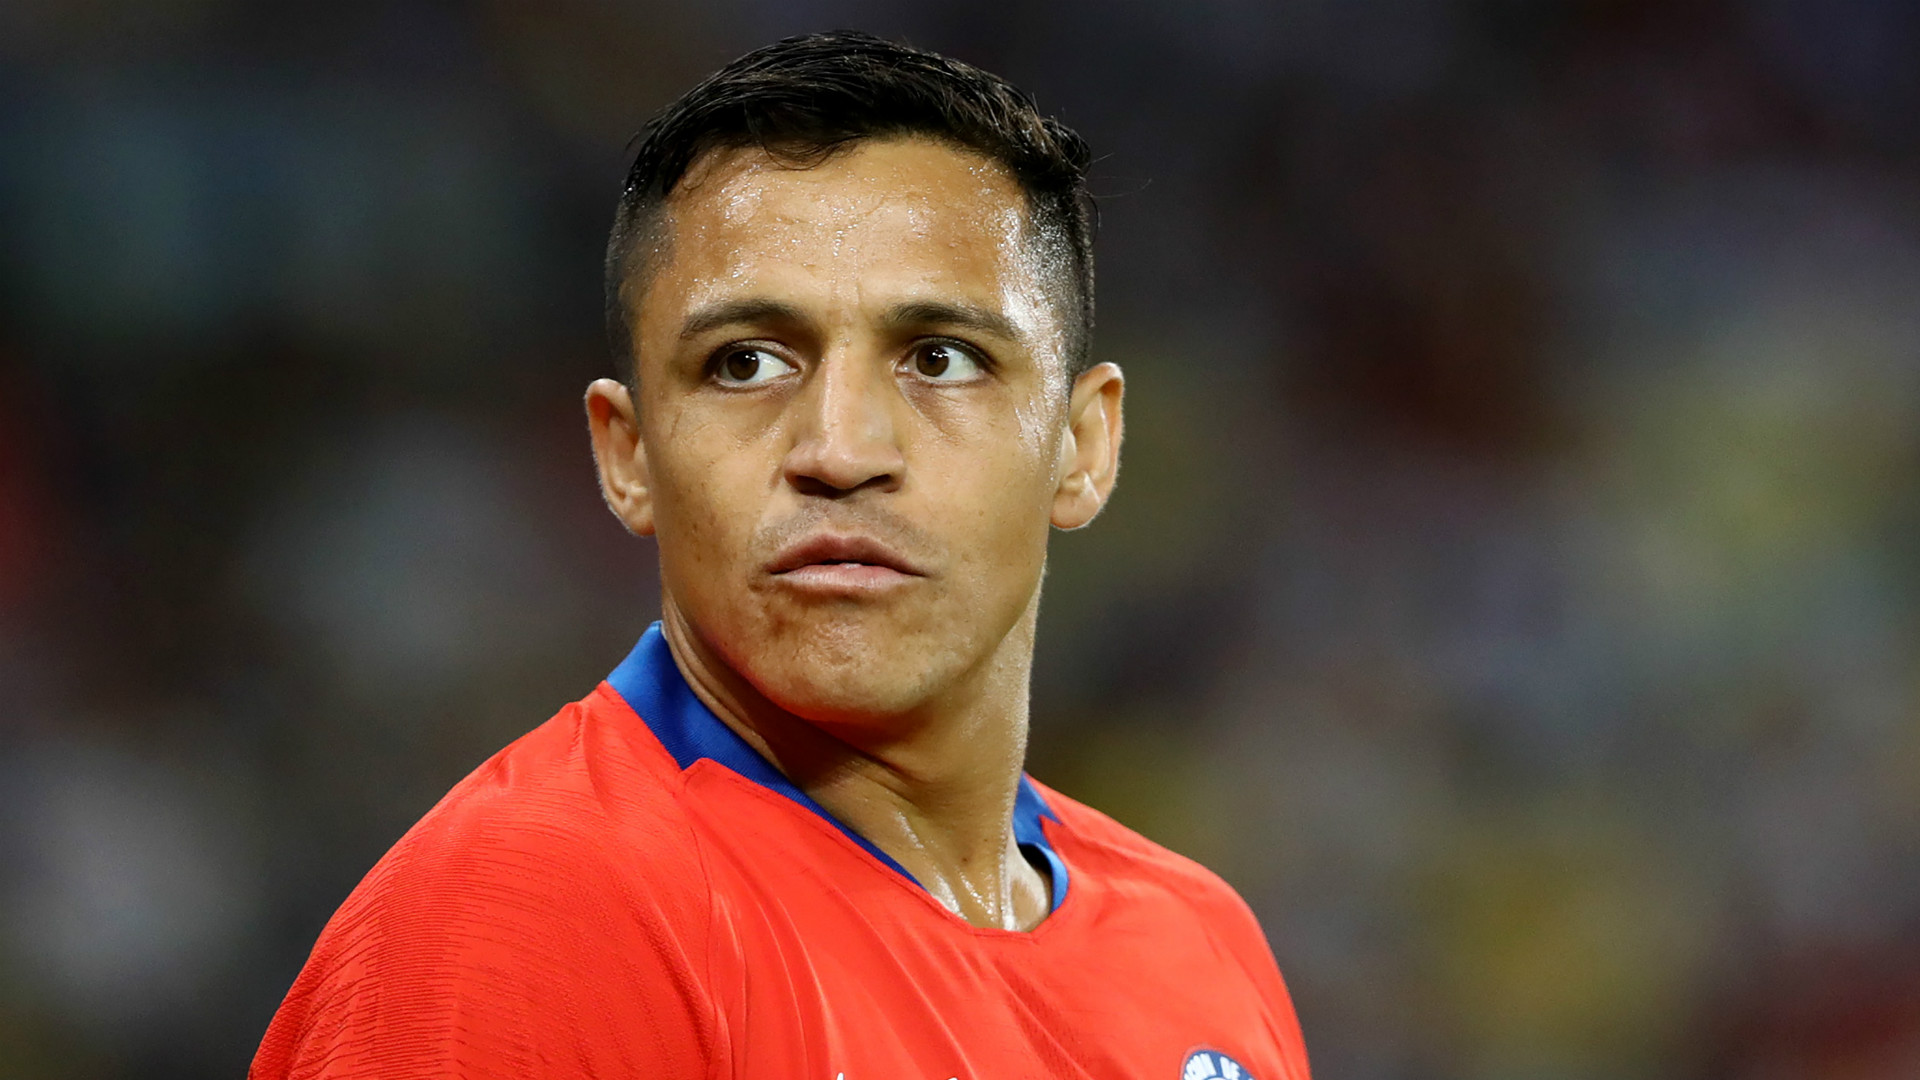 Sanchez & Vidal set for quarantine due to coronavirus outbreak if they travel to Chile for World Cup qualifiers